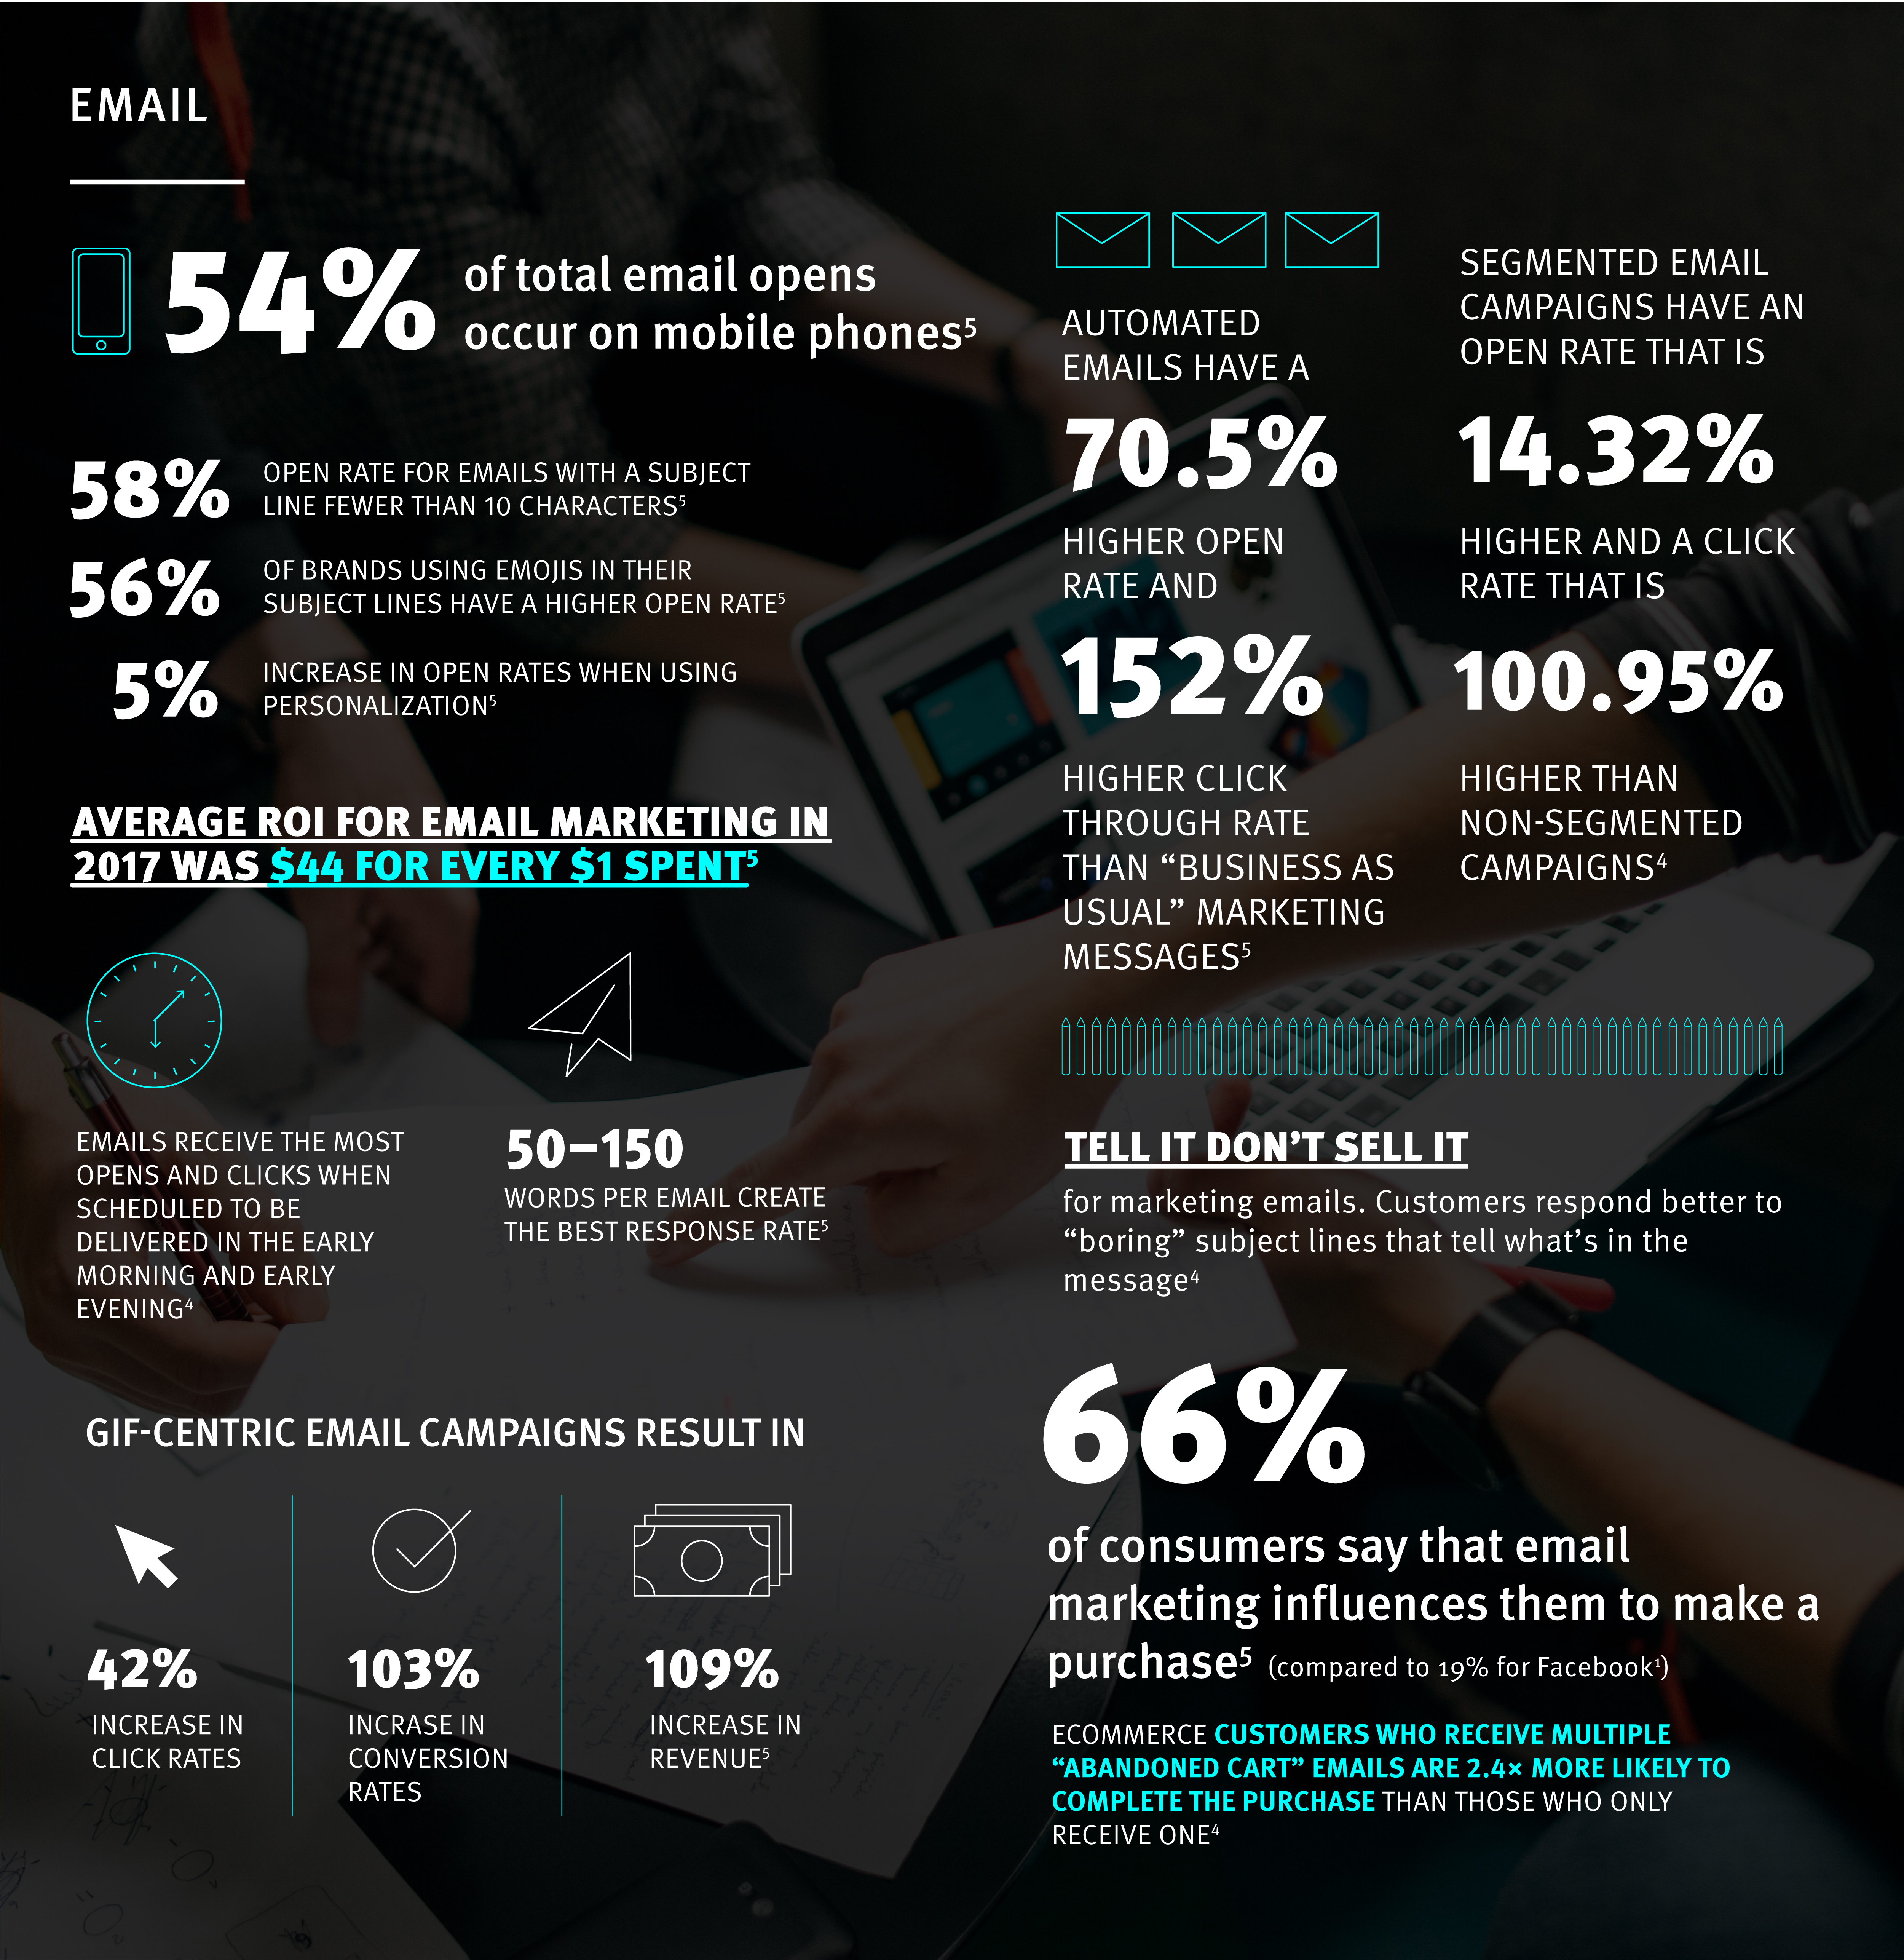 Email digital marketing statistics